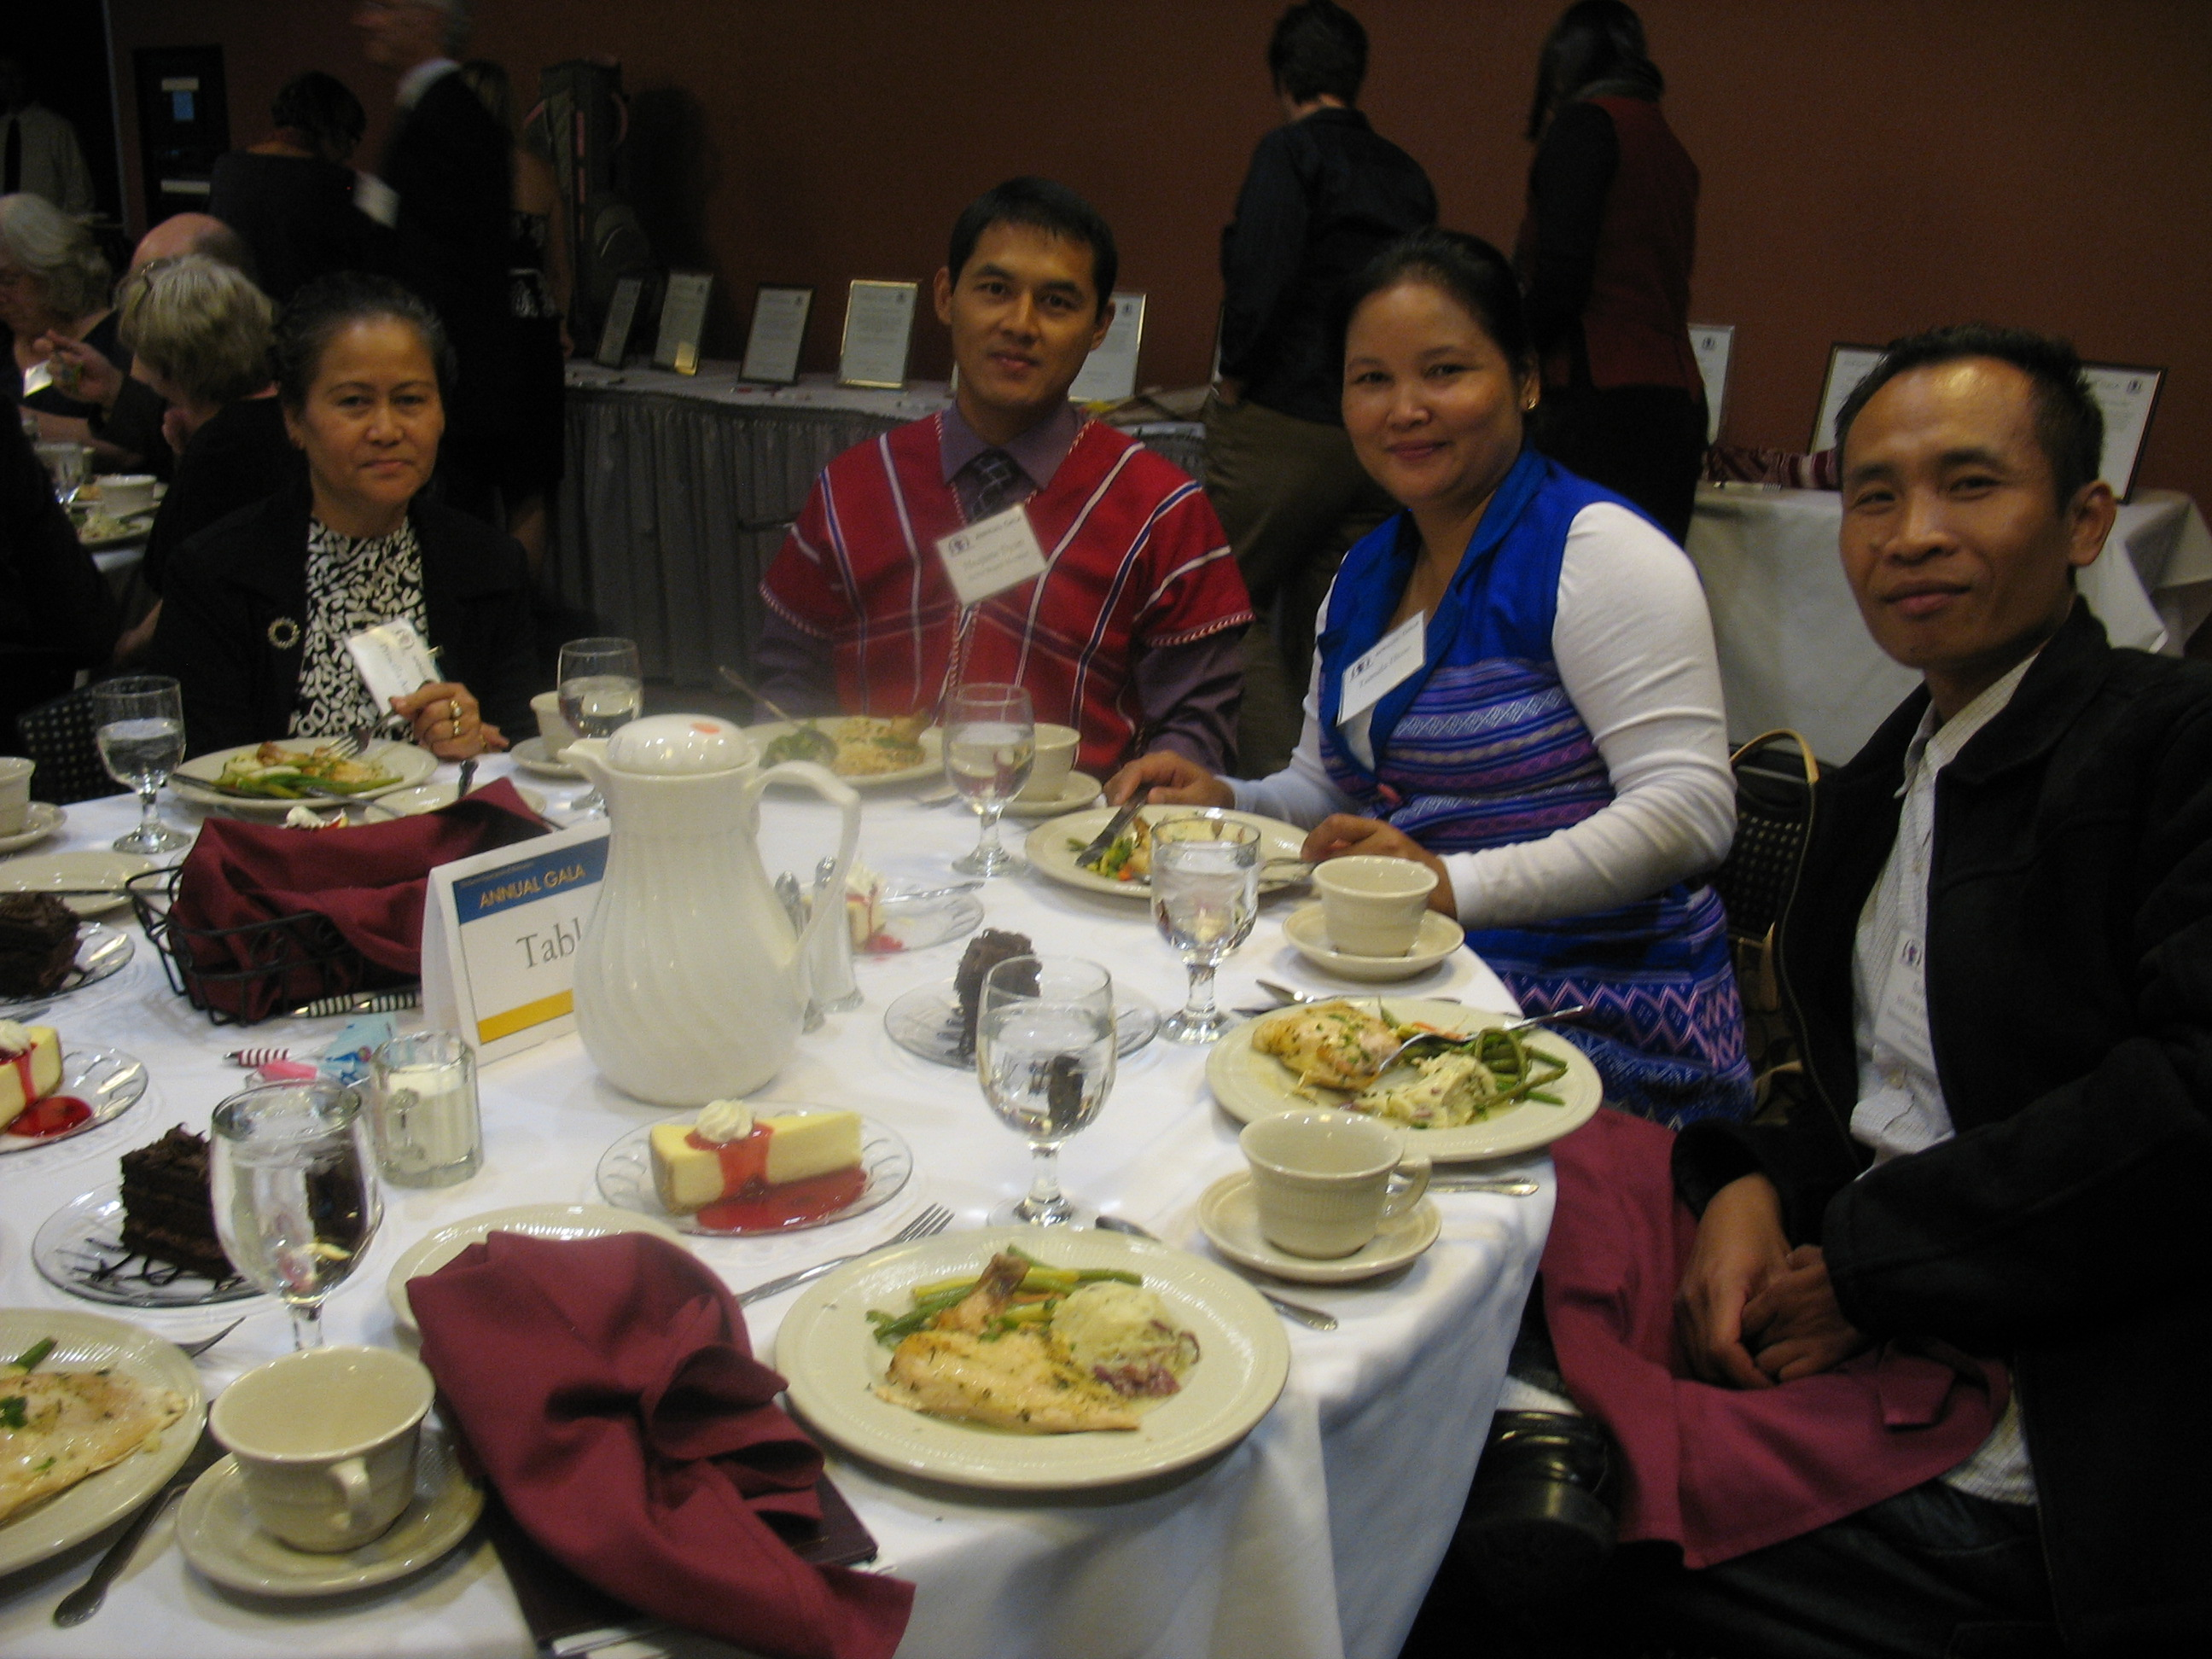 Priscilla Aung, Hsajune Dyan, and other members of the Karen community in Minnesota eating dinner at the Karen Organization of Minnesota's 2nd Annual Gala on October 11, 2012. (Photo by Michelle Tran)